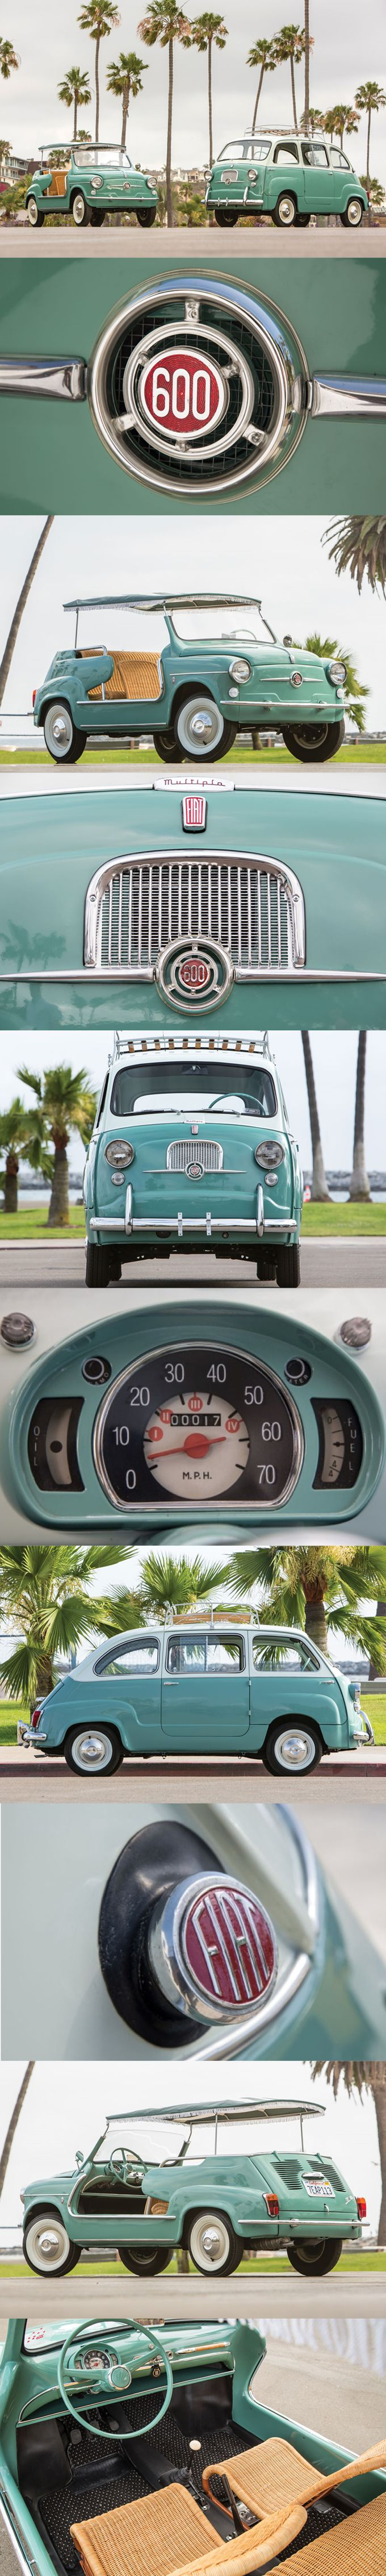 1957 Fiat 600 Multipla / 1961 Fiat 600 Jolly / mint green white / Italy / MPV / beach car / 17-269